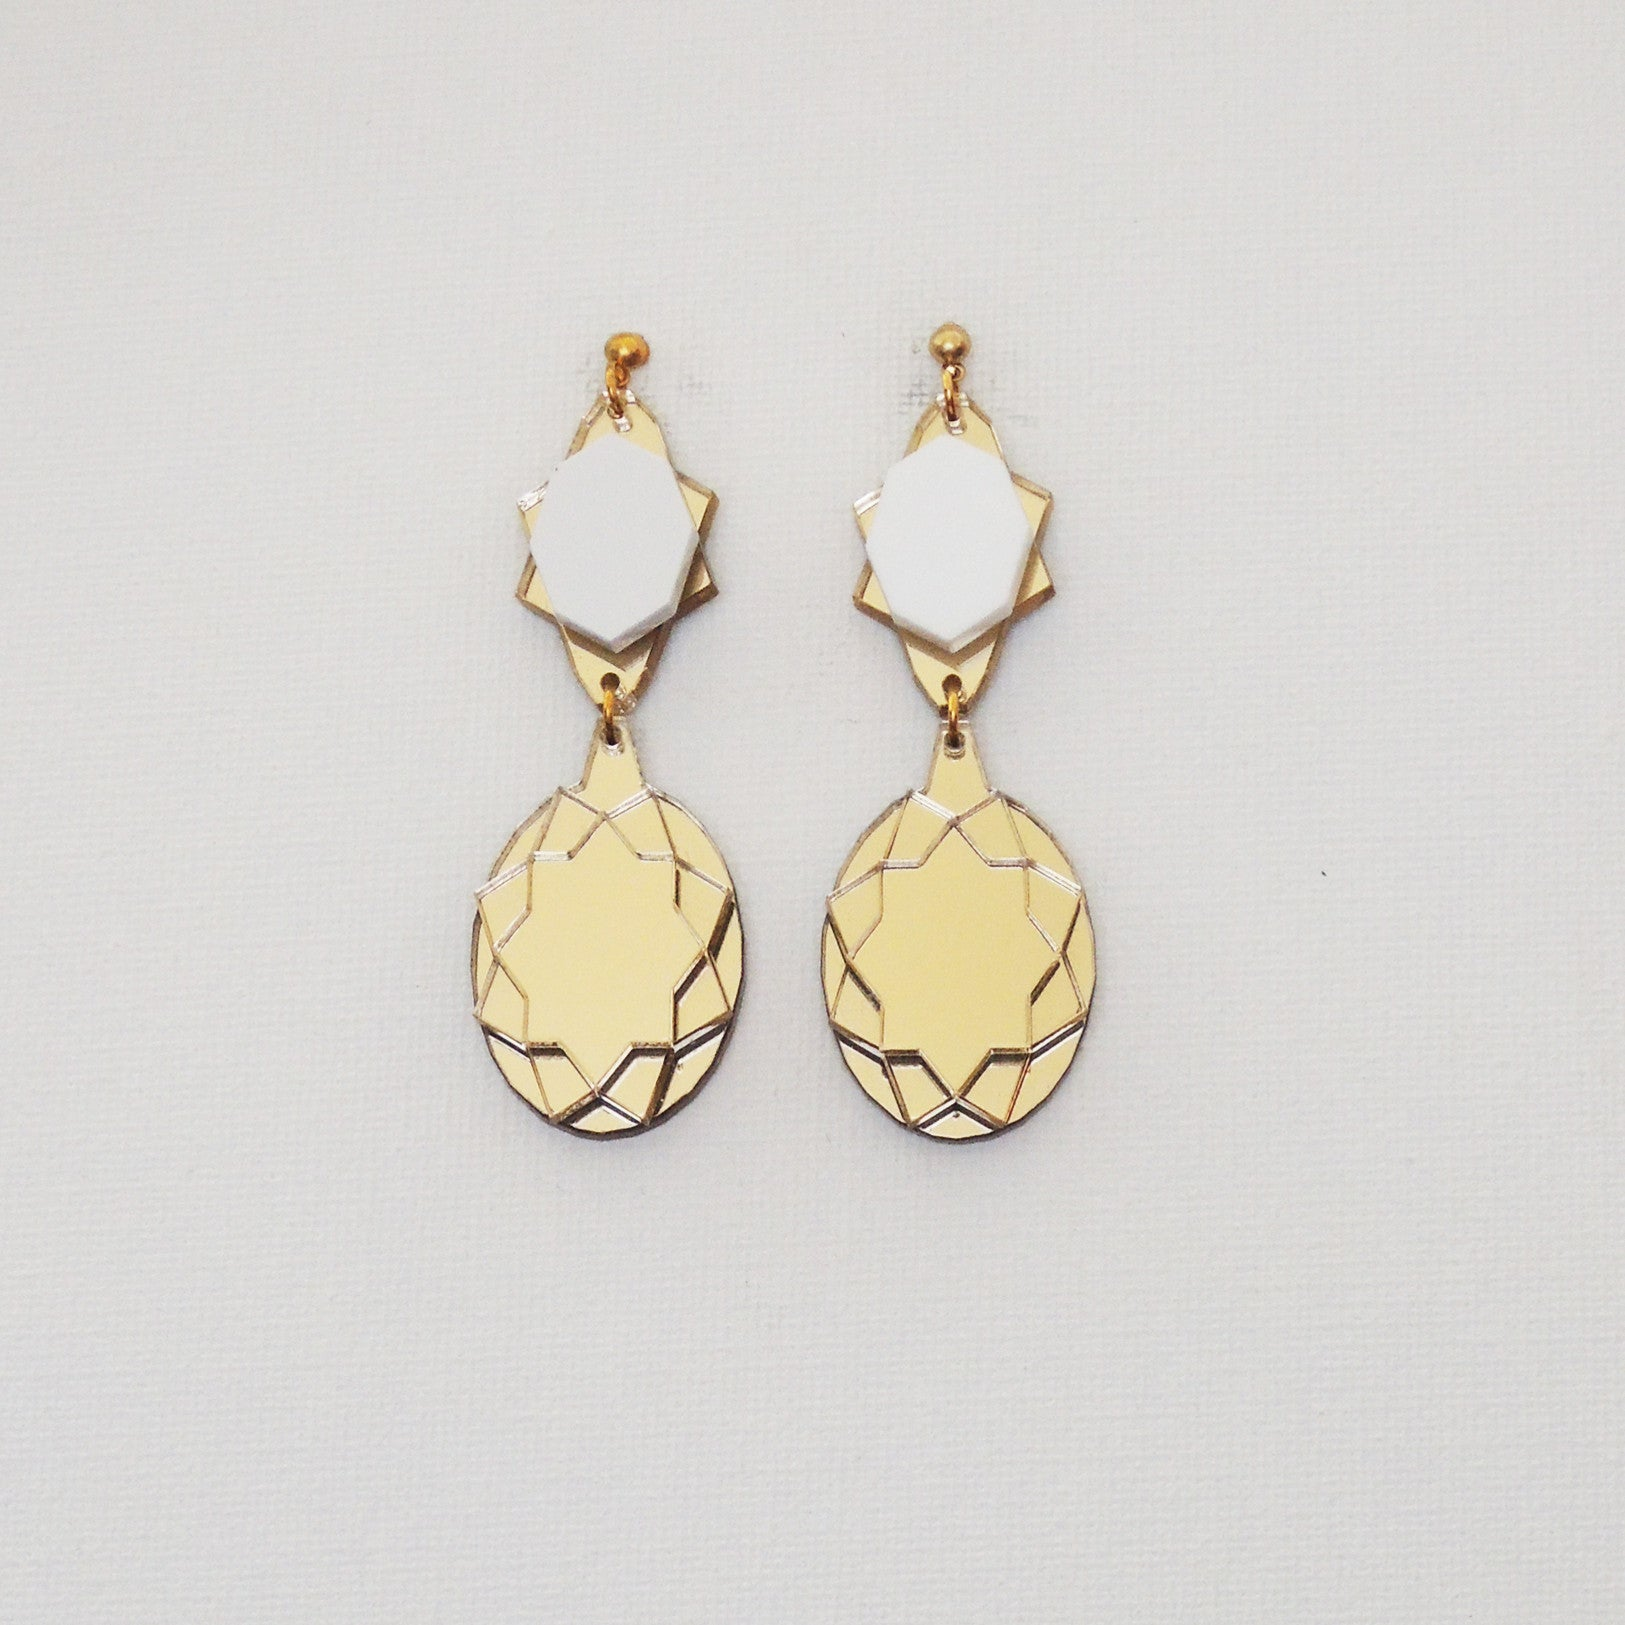 VECTORY OVAL GW MID EARRINGS